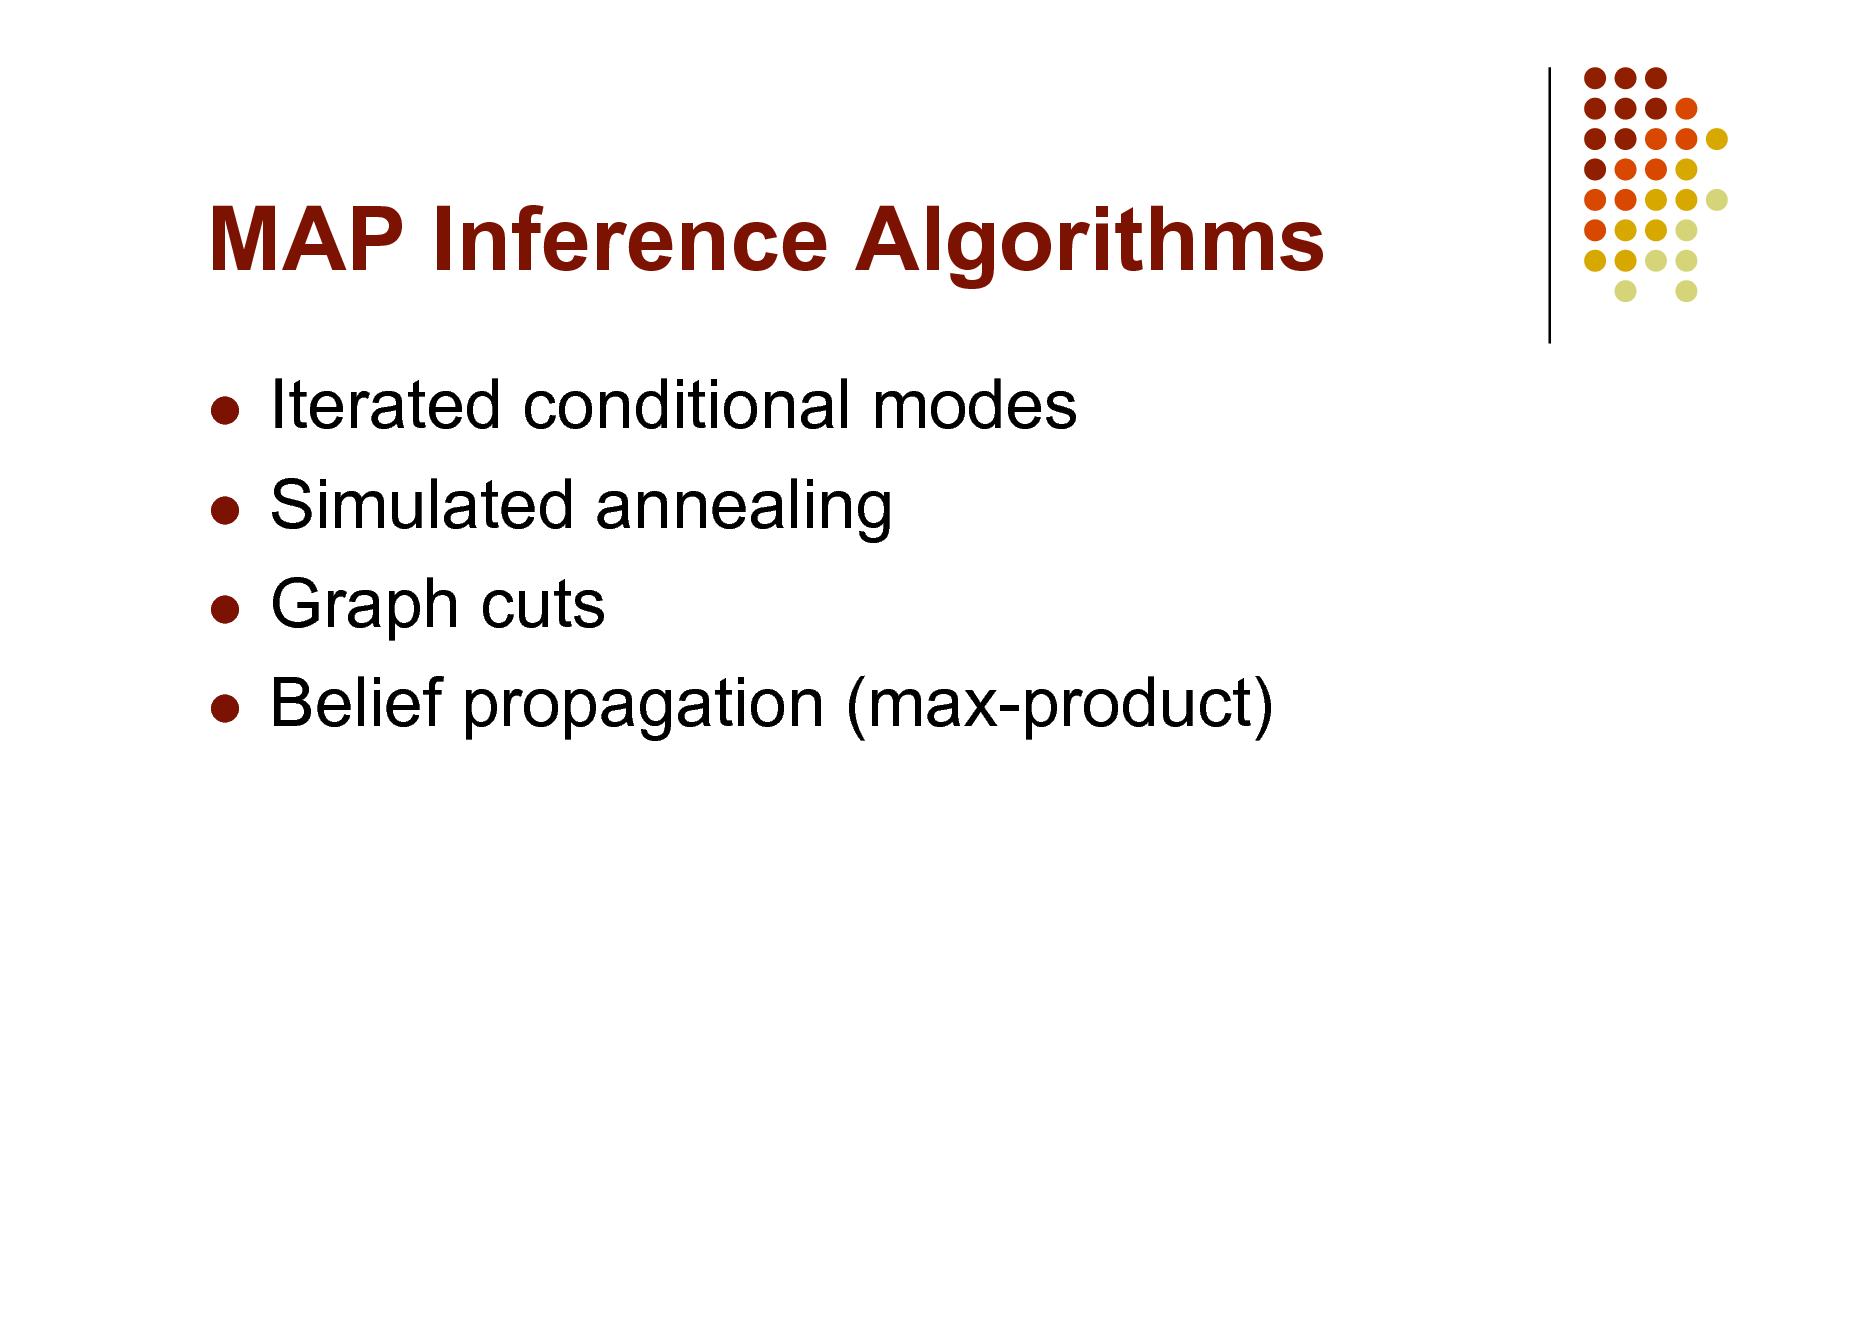 Slide: MAP Inference Algorithms Iterated conditional modes  Simulated annealing  Graph cuts  Belief propagation (max-product)